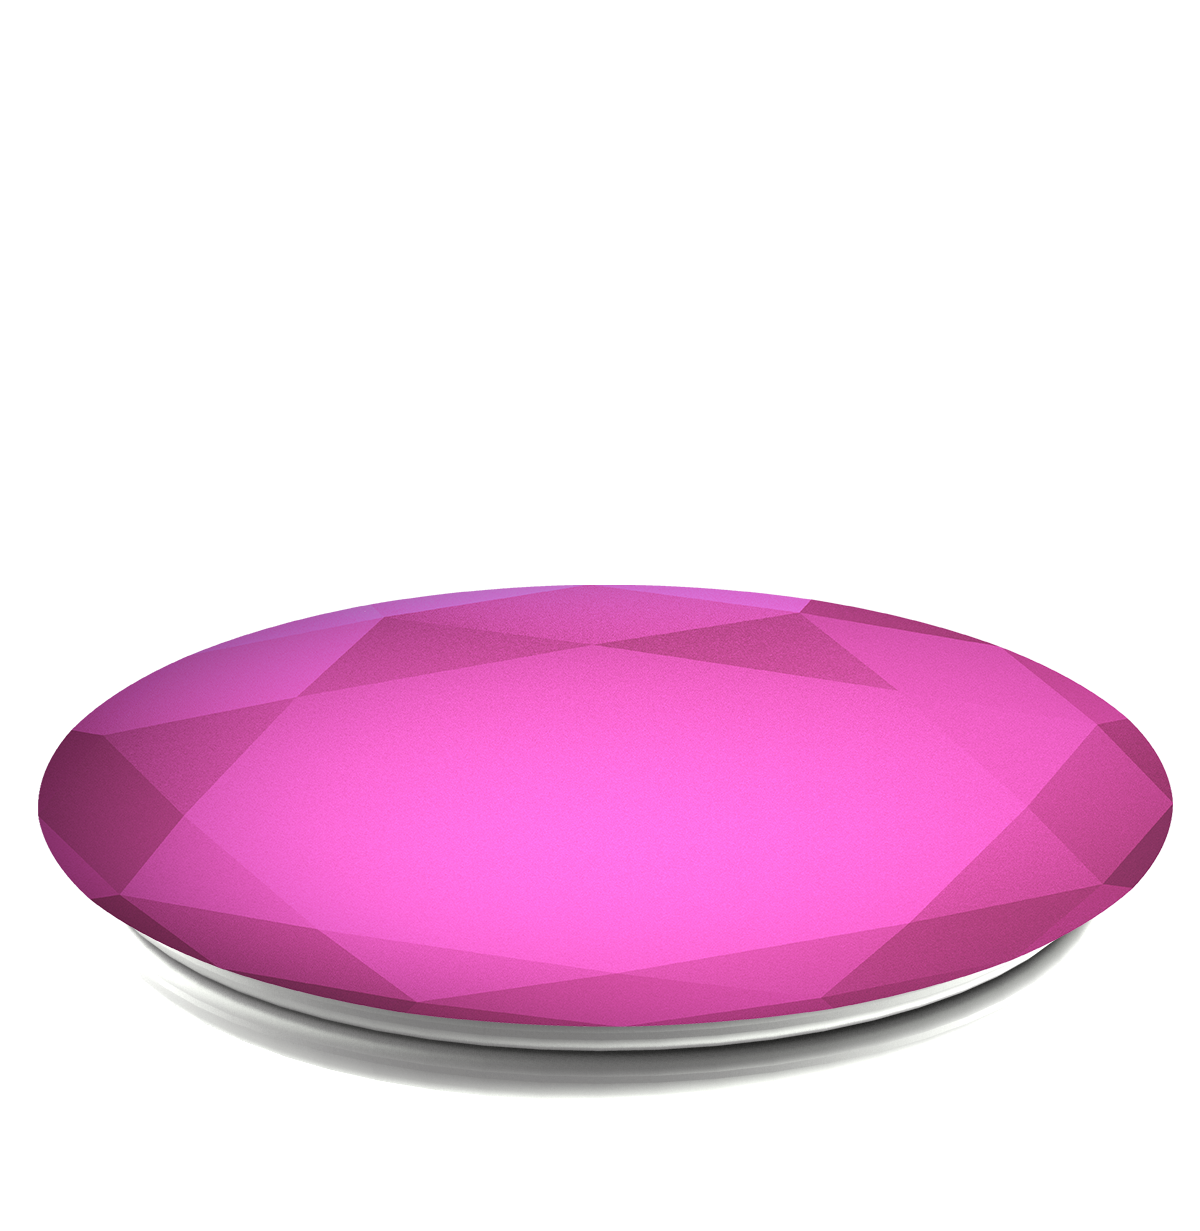 PopSockets Grip Diamond Metallic Fuchsia